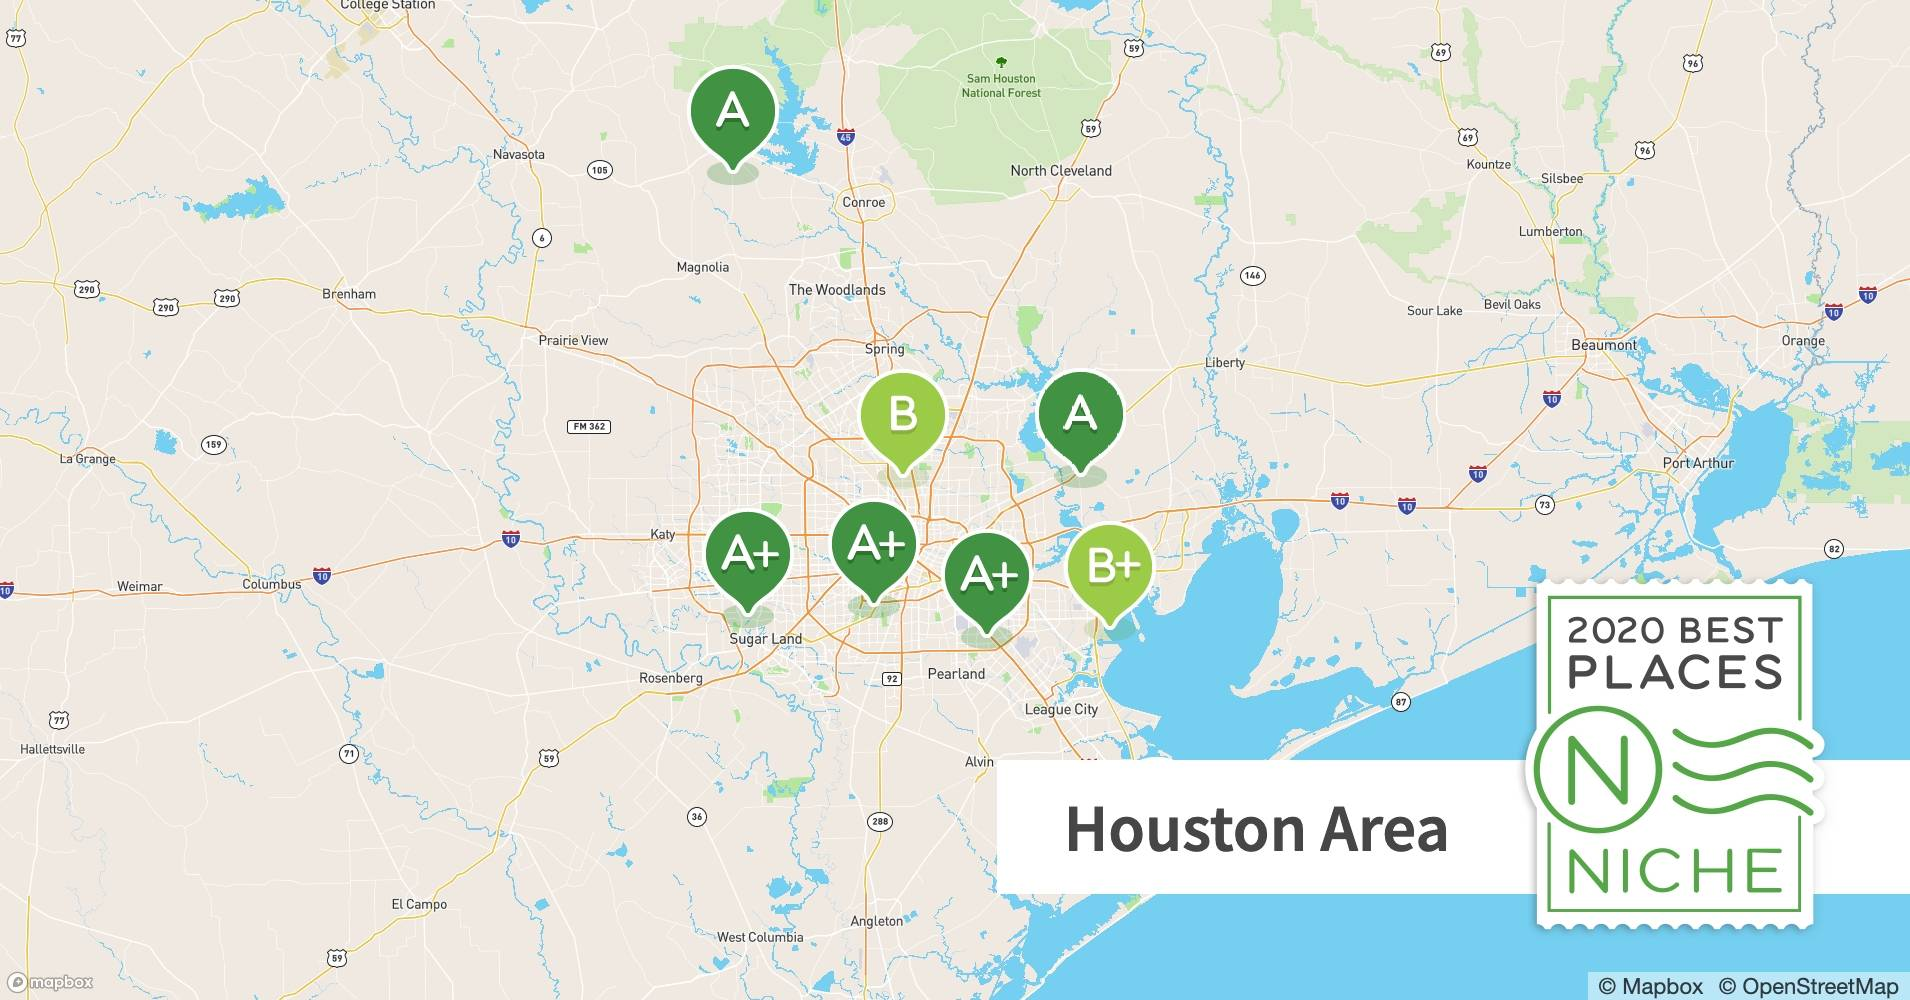 2020 Best Places To Live In The Houston Area Niche,How To Keep Dog From Jumping Fence